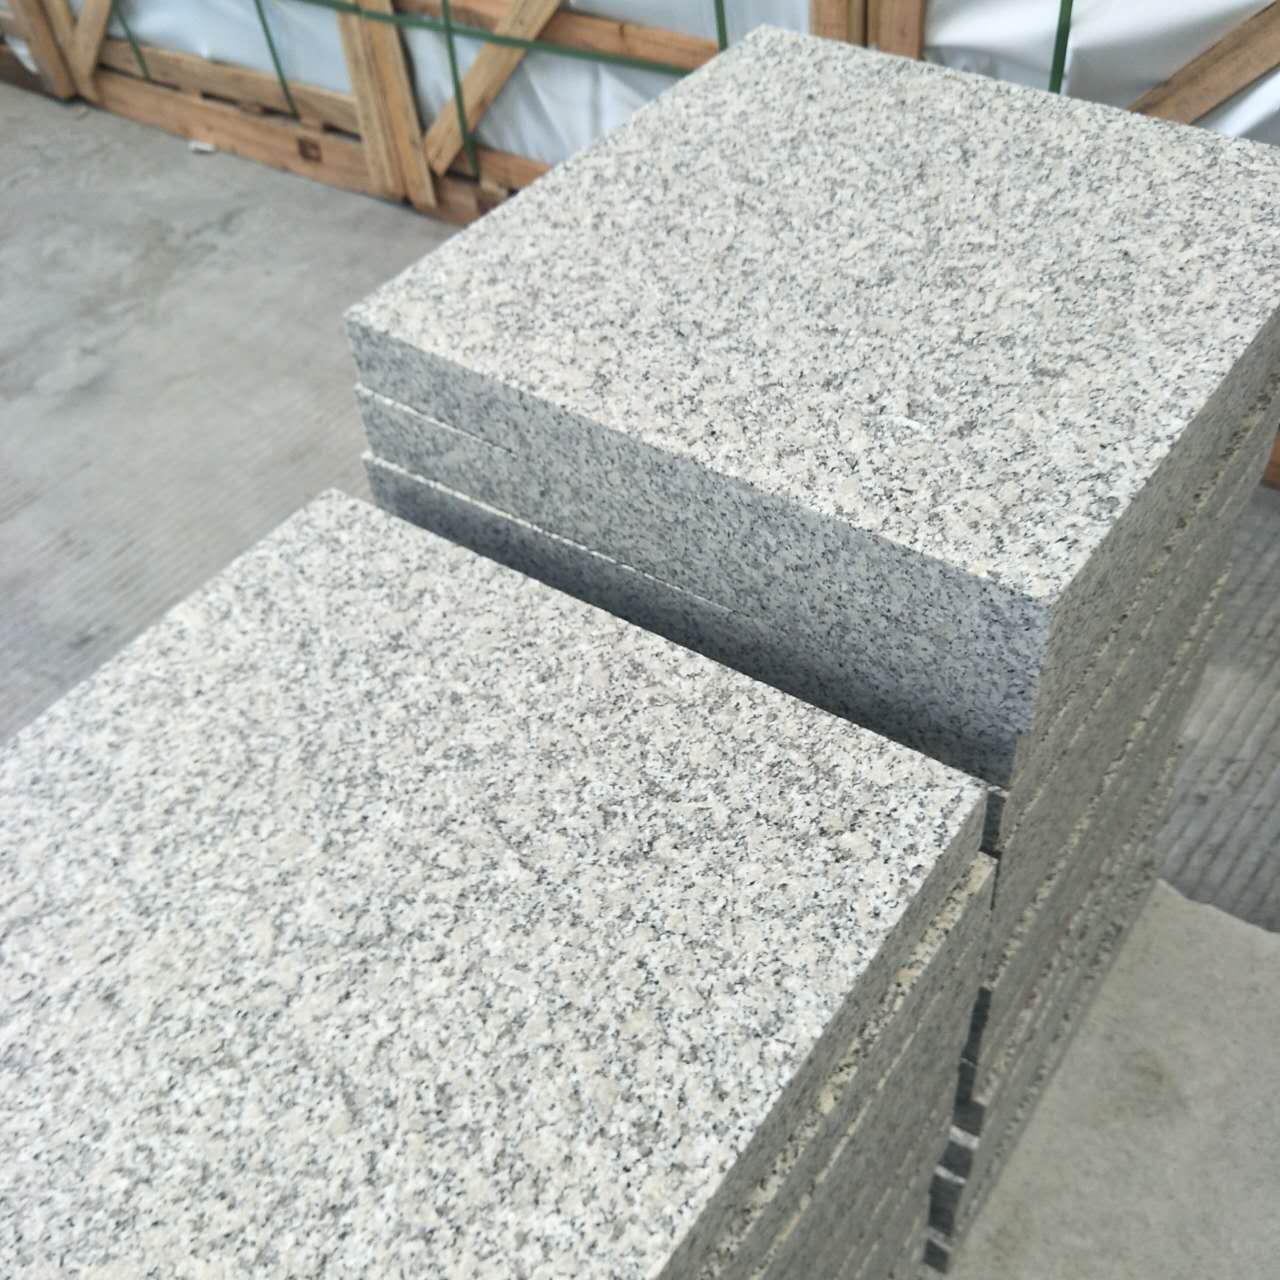 Granite G602 Flamed Tile